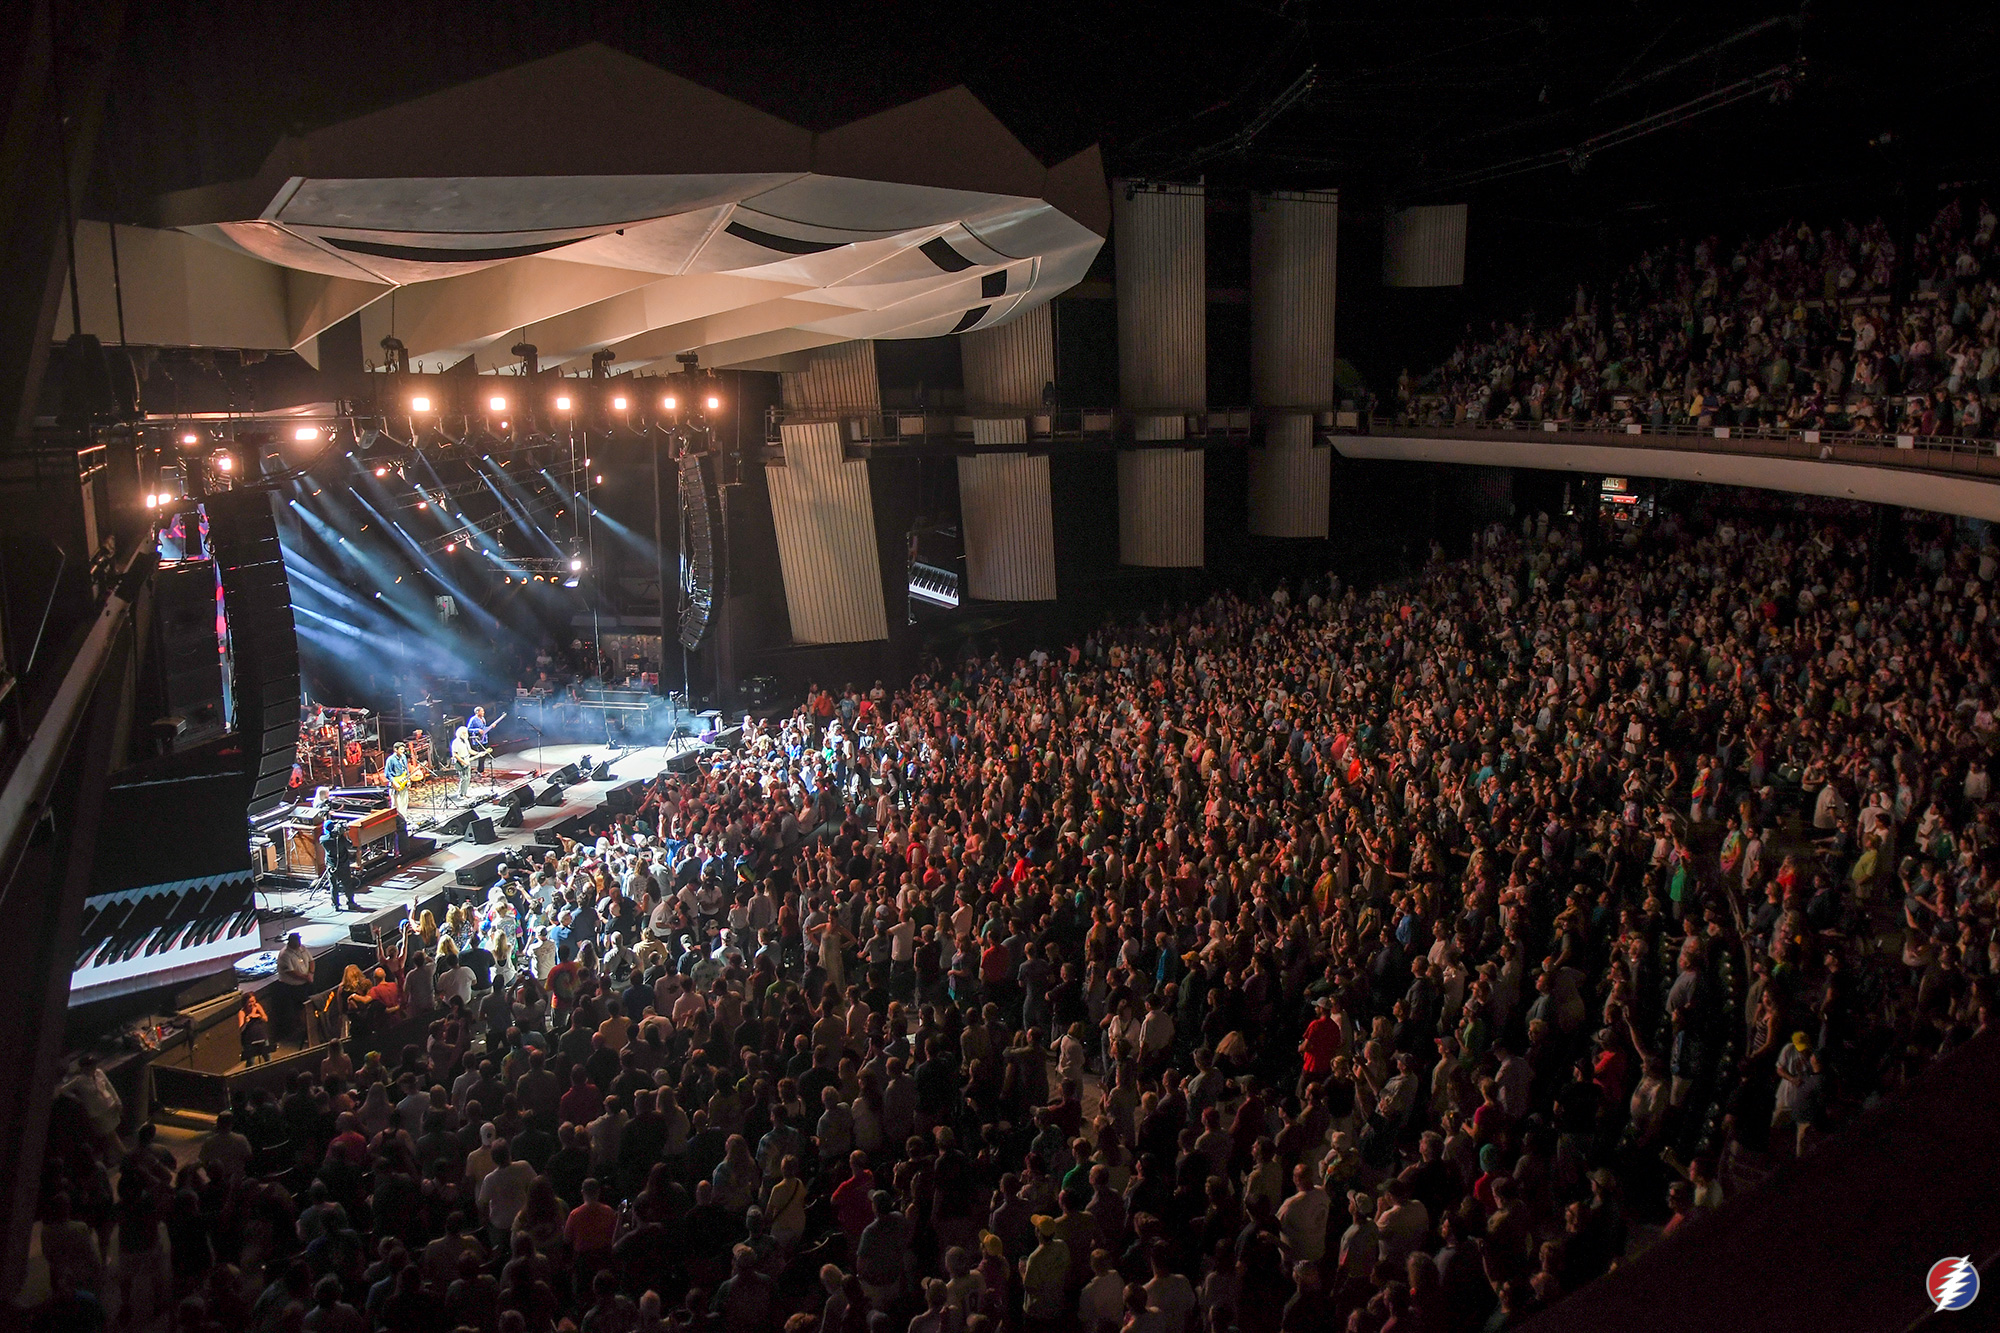 Dead and Company at Saratoga Performing Arts Center. 6.18.19. Photo by Katie Friesema